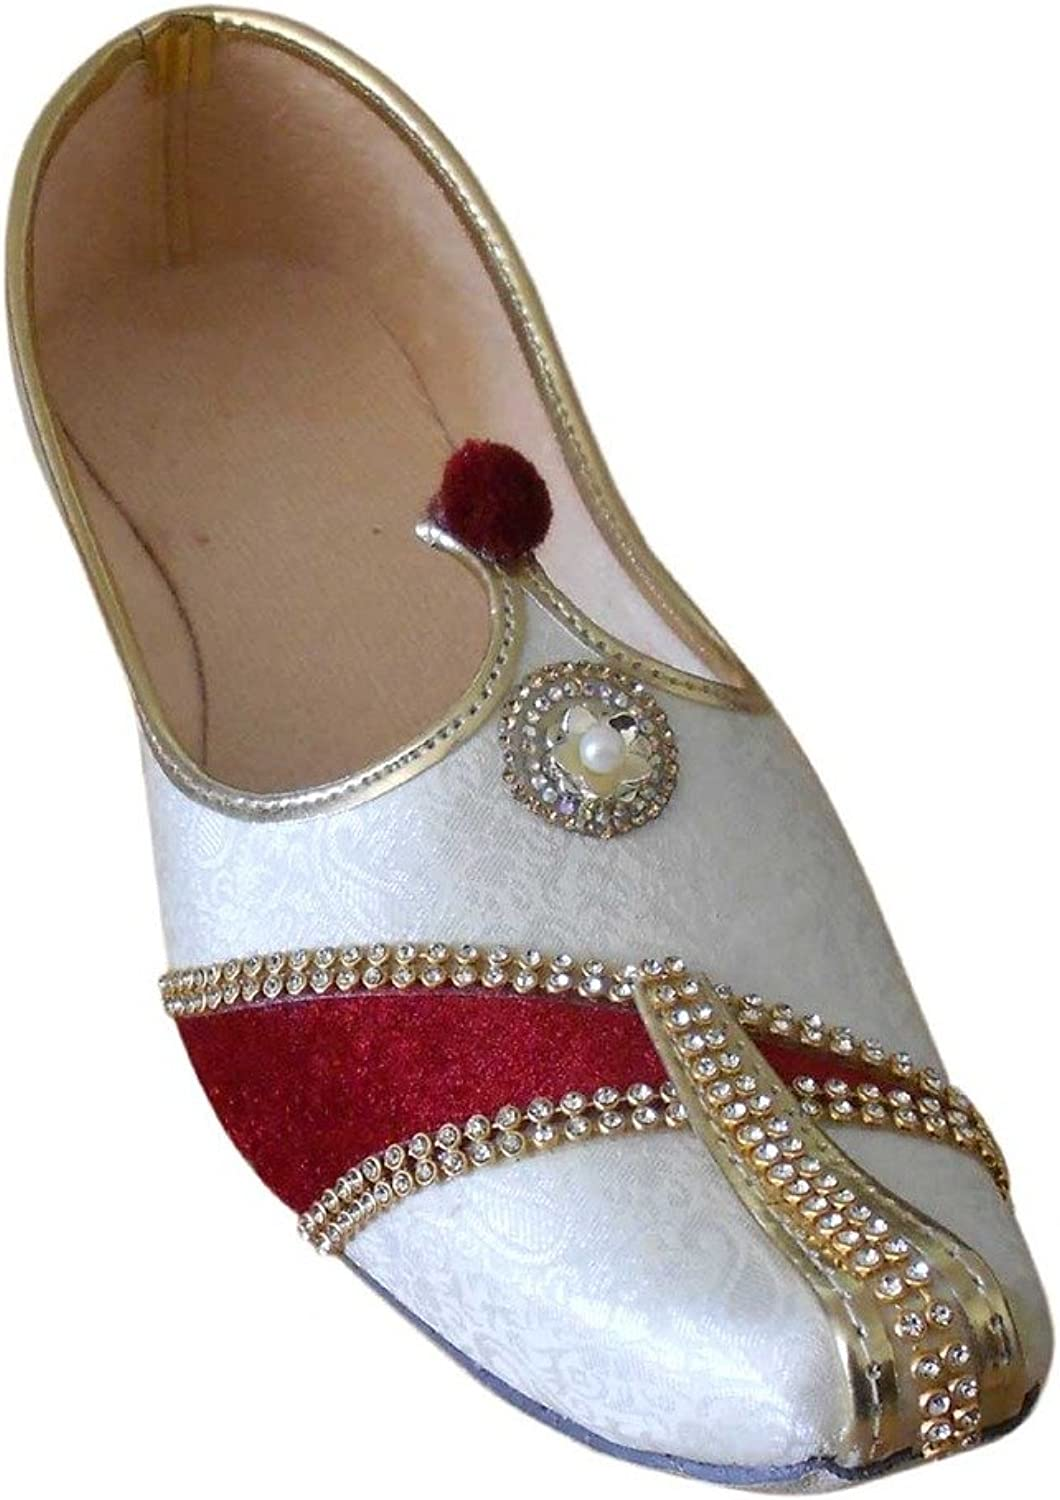 Kalra Creations Men's Traditional Indian Mojari Wedding shoes